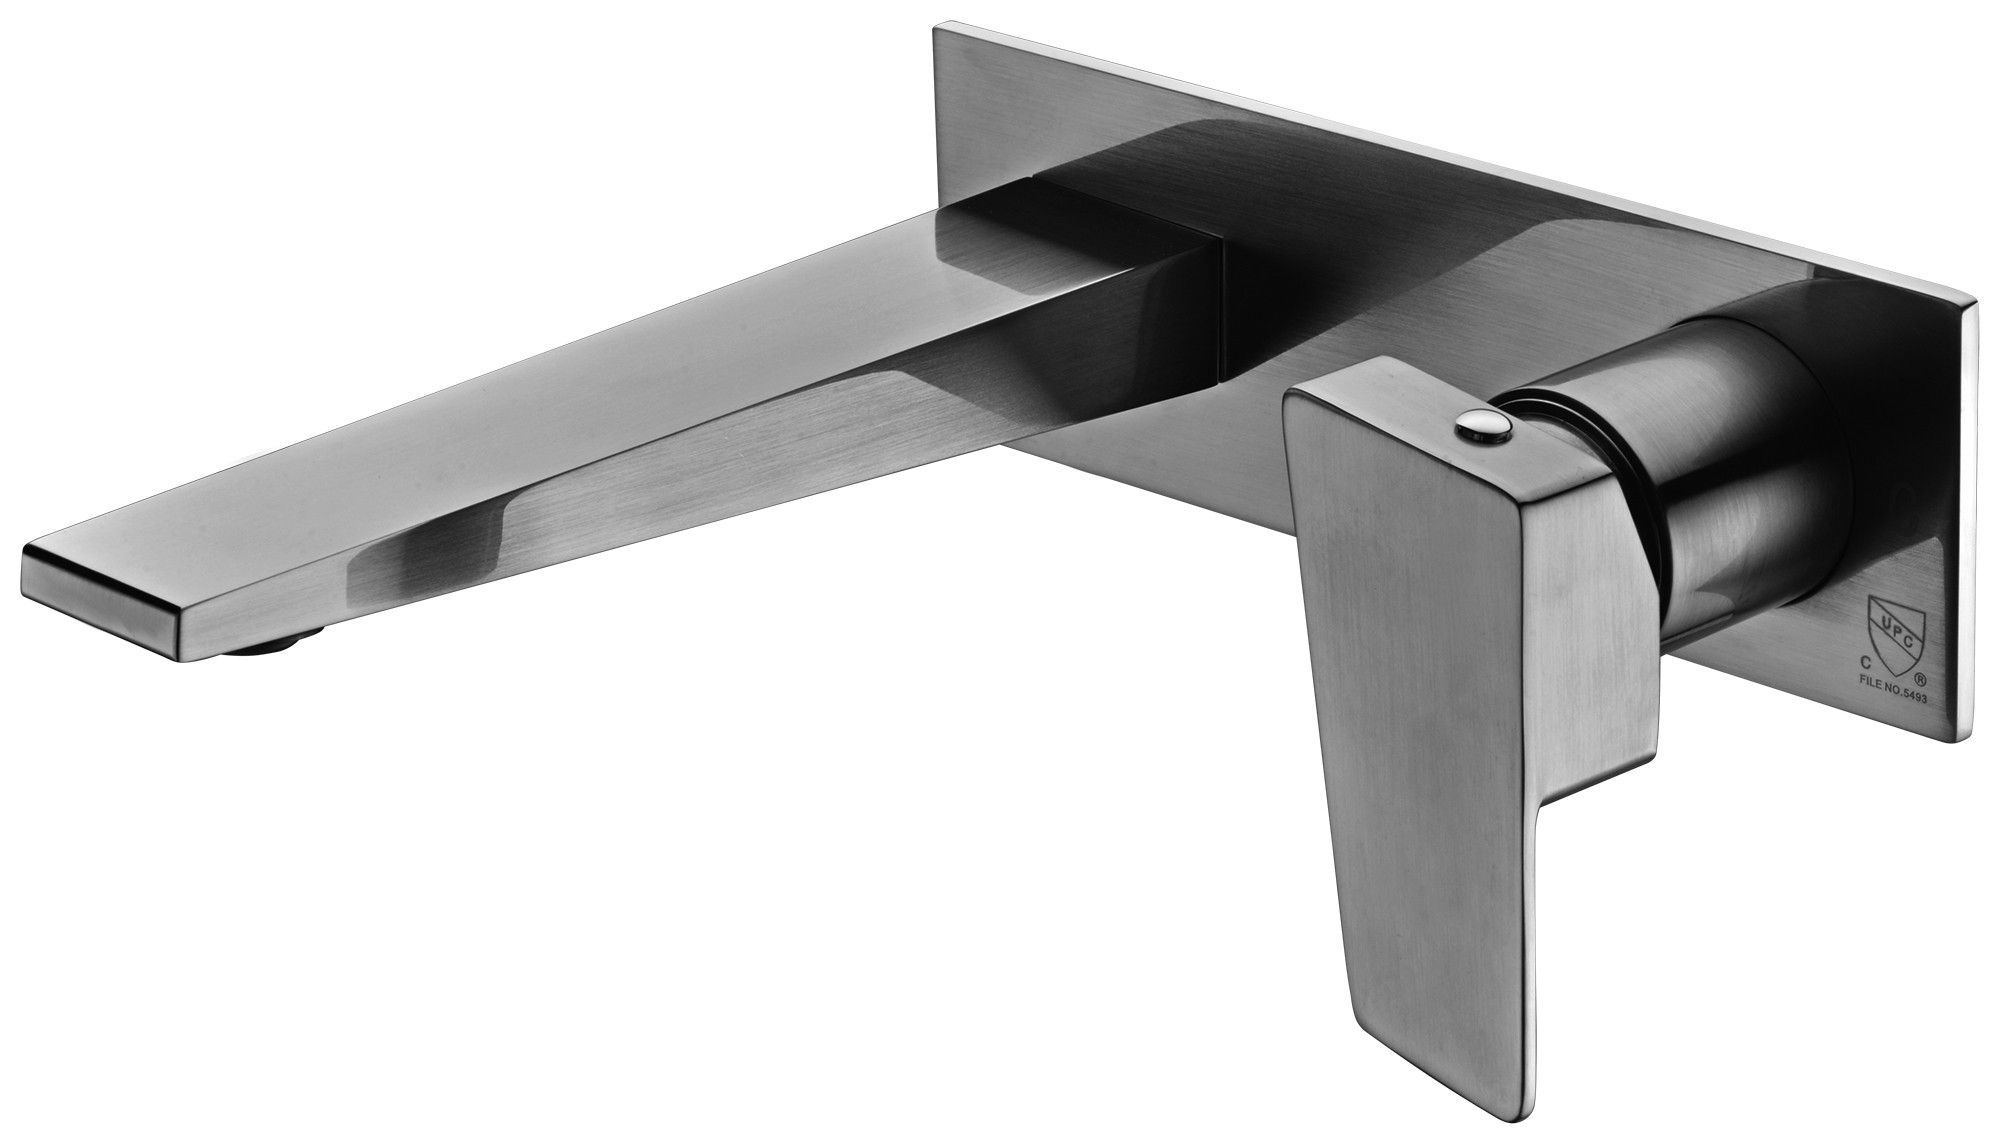 Alfi Brand Ab1472 Bn Brushed Nickel Wall Mounted Bathroom Faucet